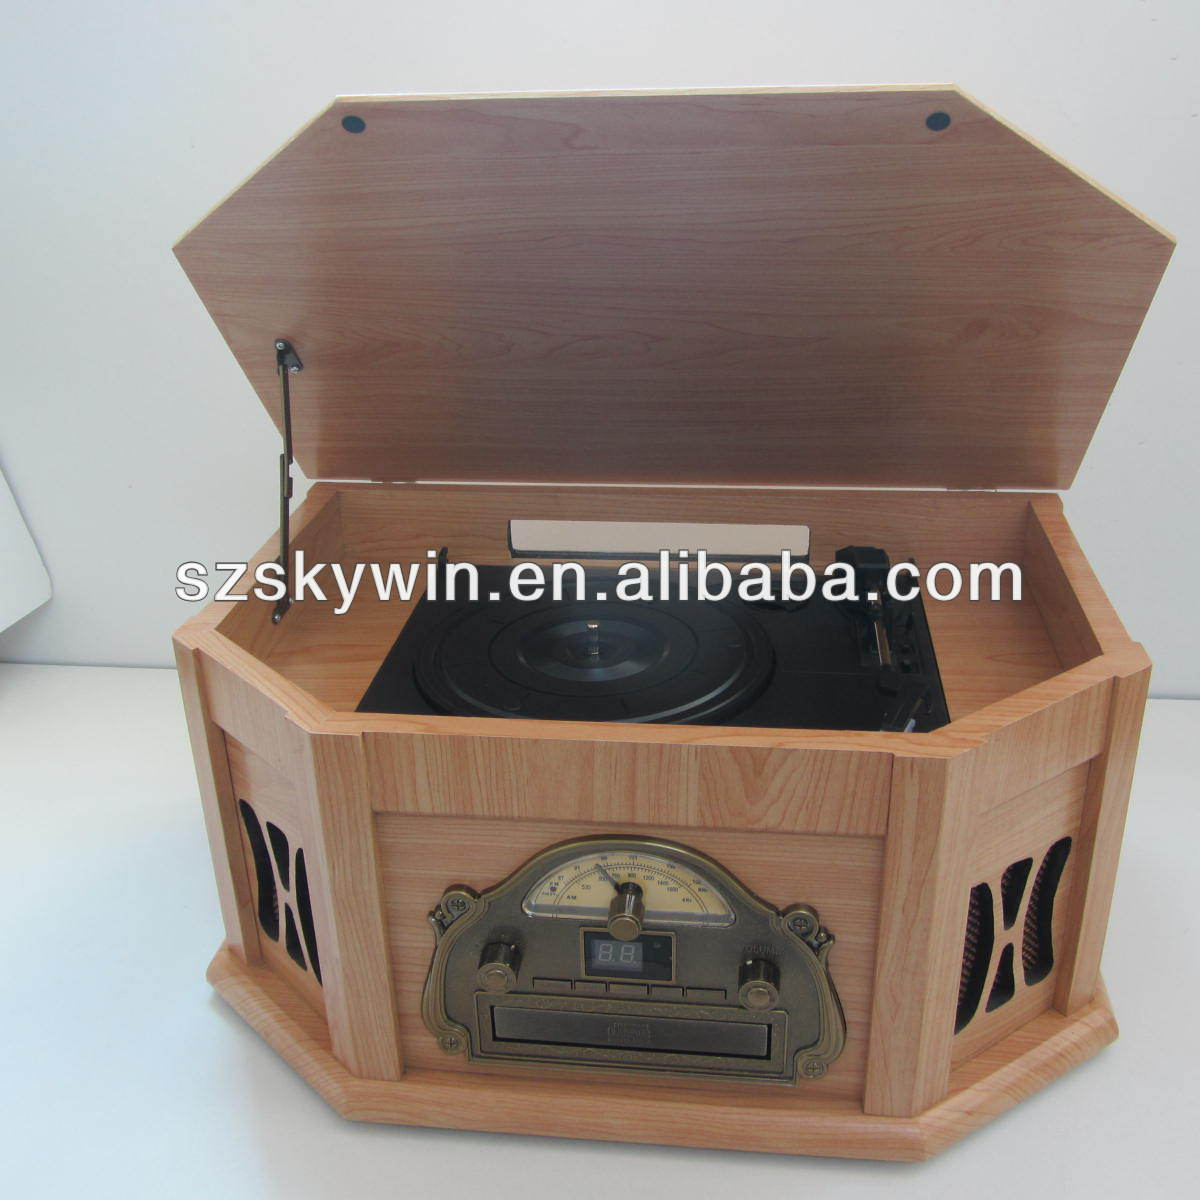 Retro wooden cd jukebox wooden gramophone player with CD player